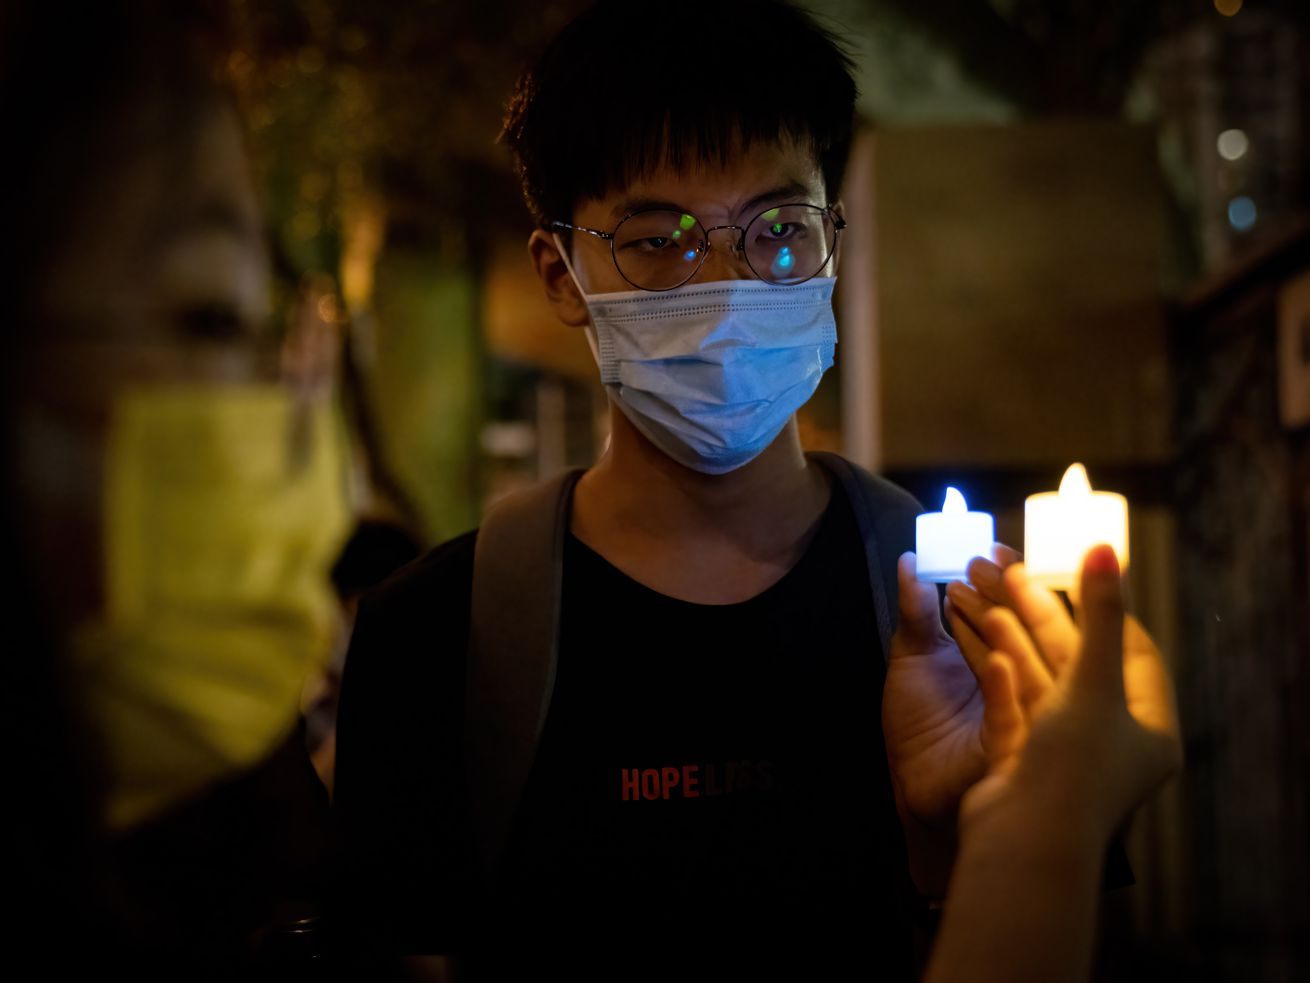 China extends reach in Hong Kong over Tiananmen Square vigil